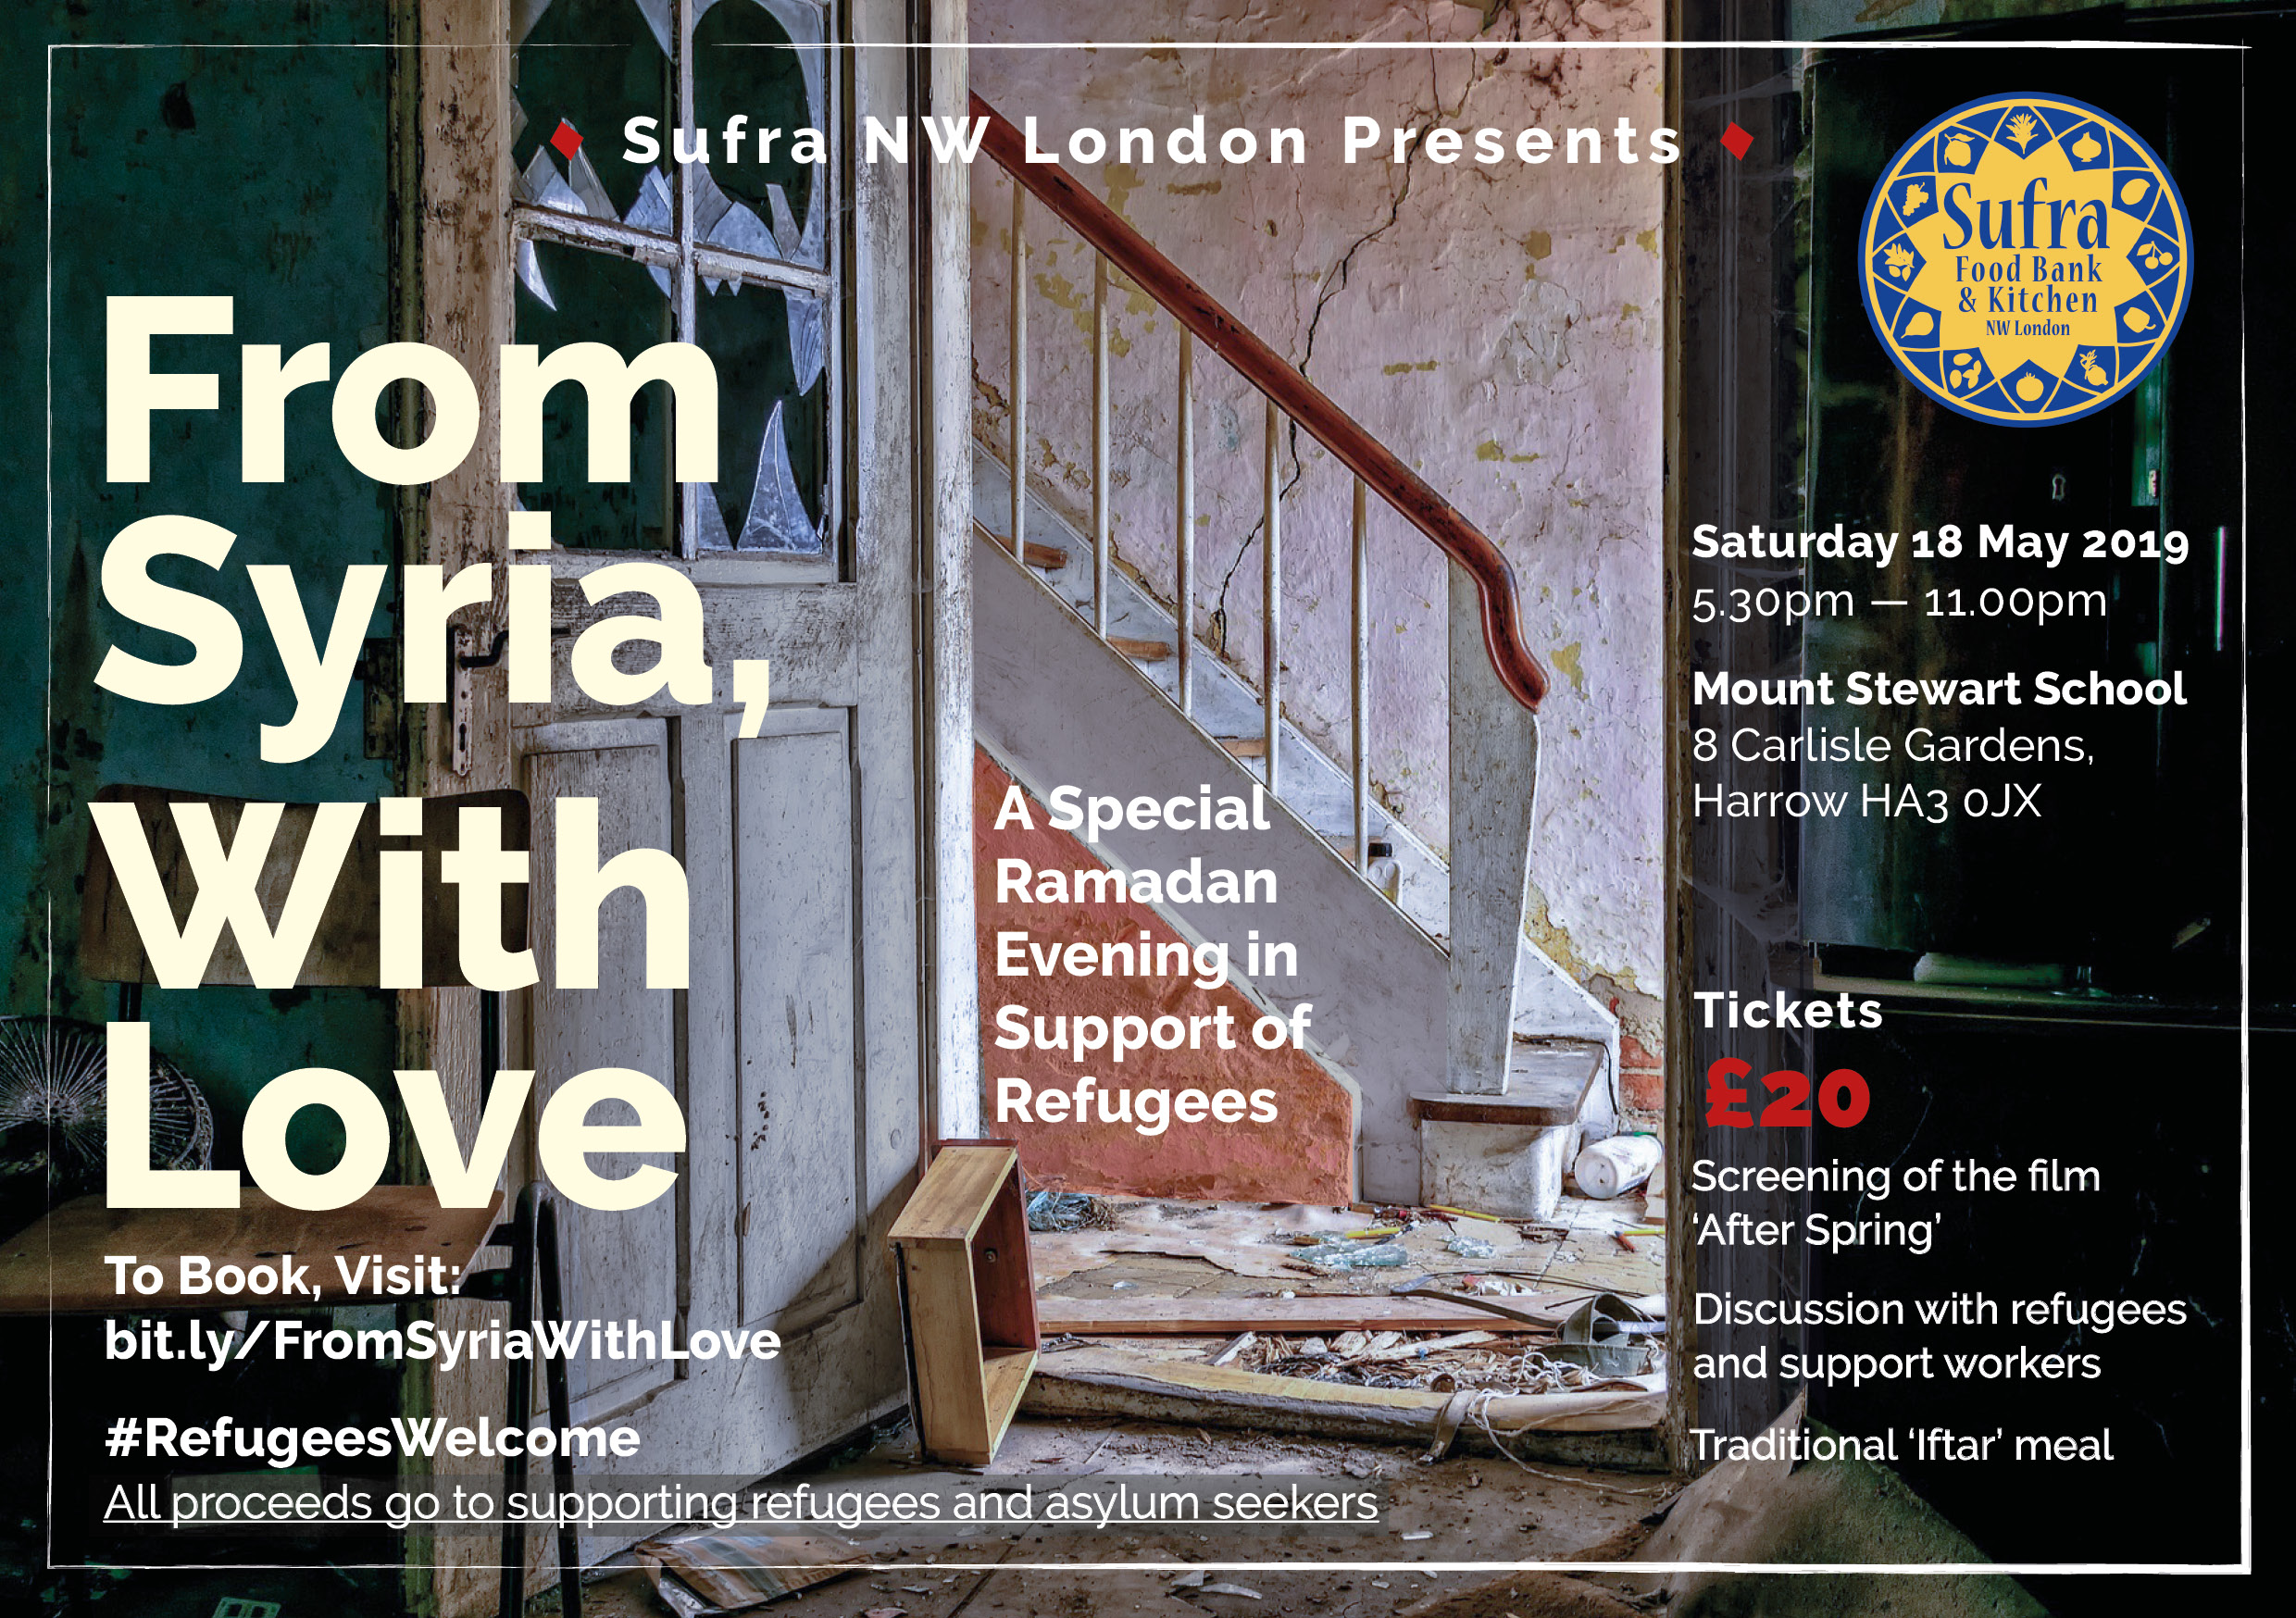 From Syria With Love Sufra Nw London